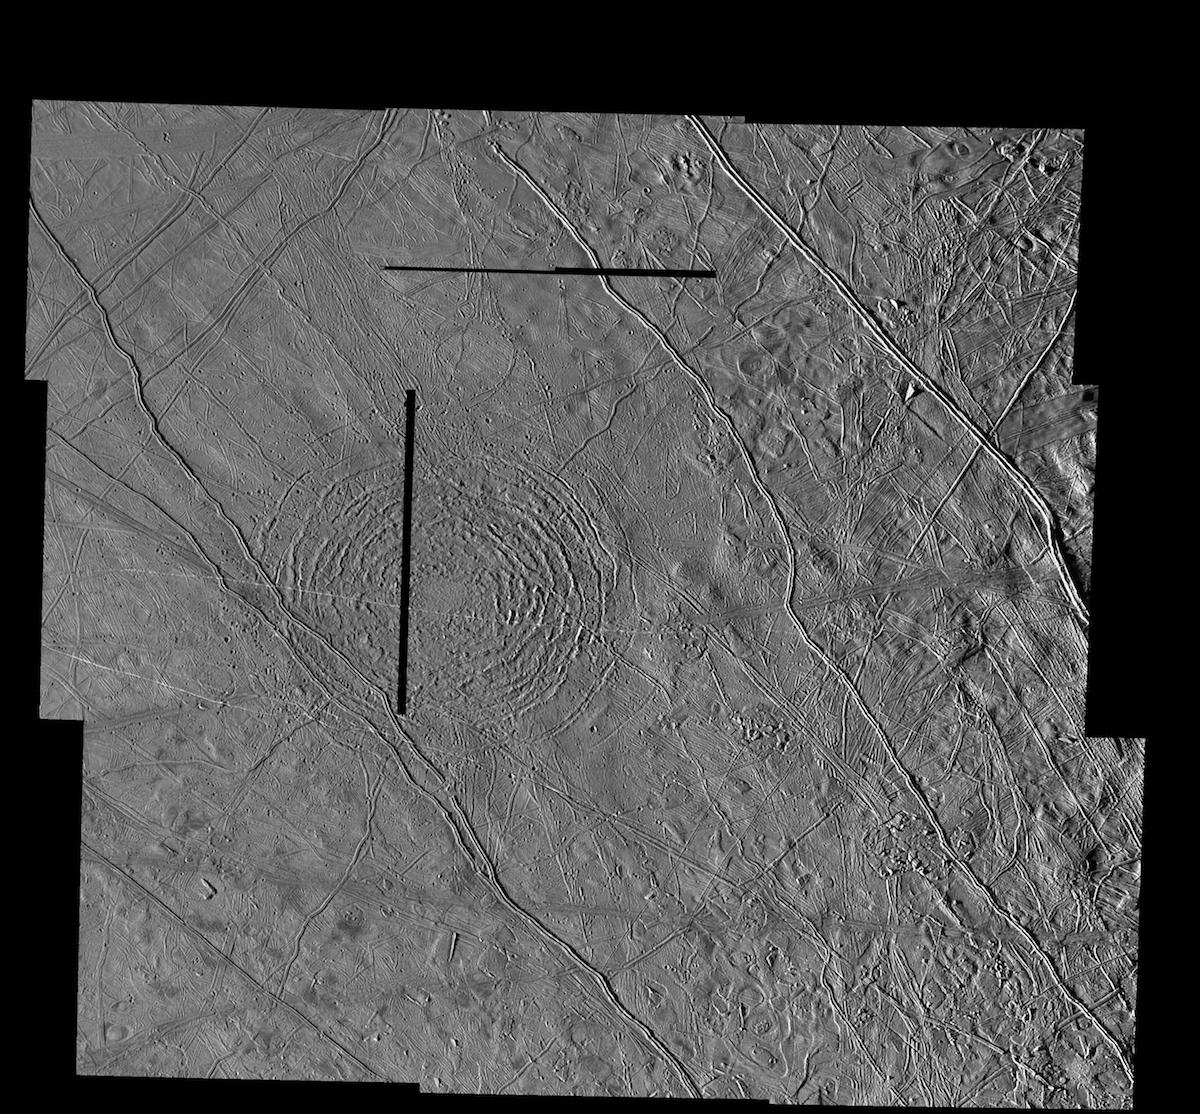 black and white view of circular ridges on an icy surface